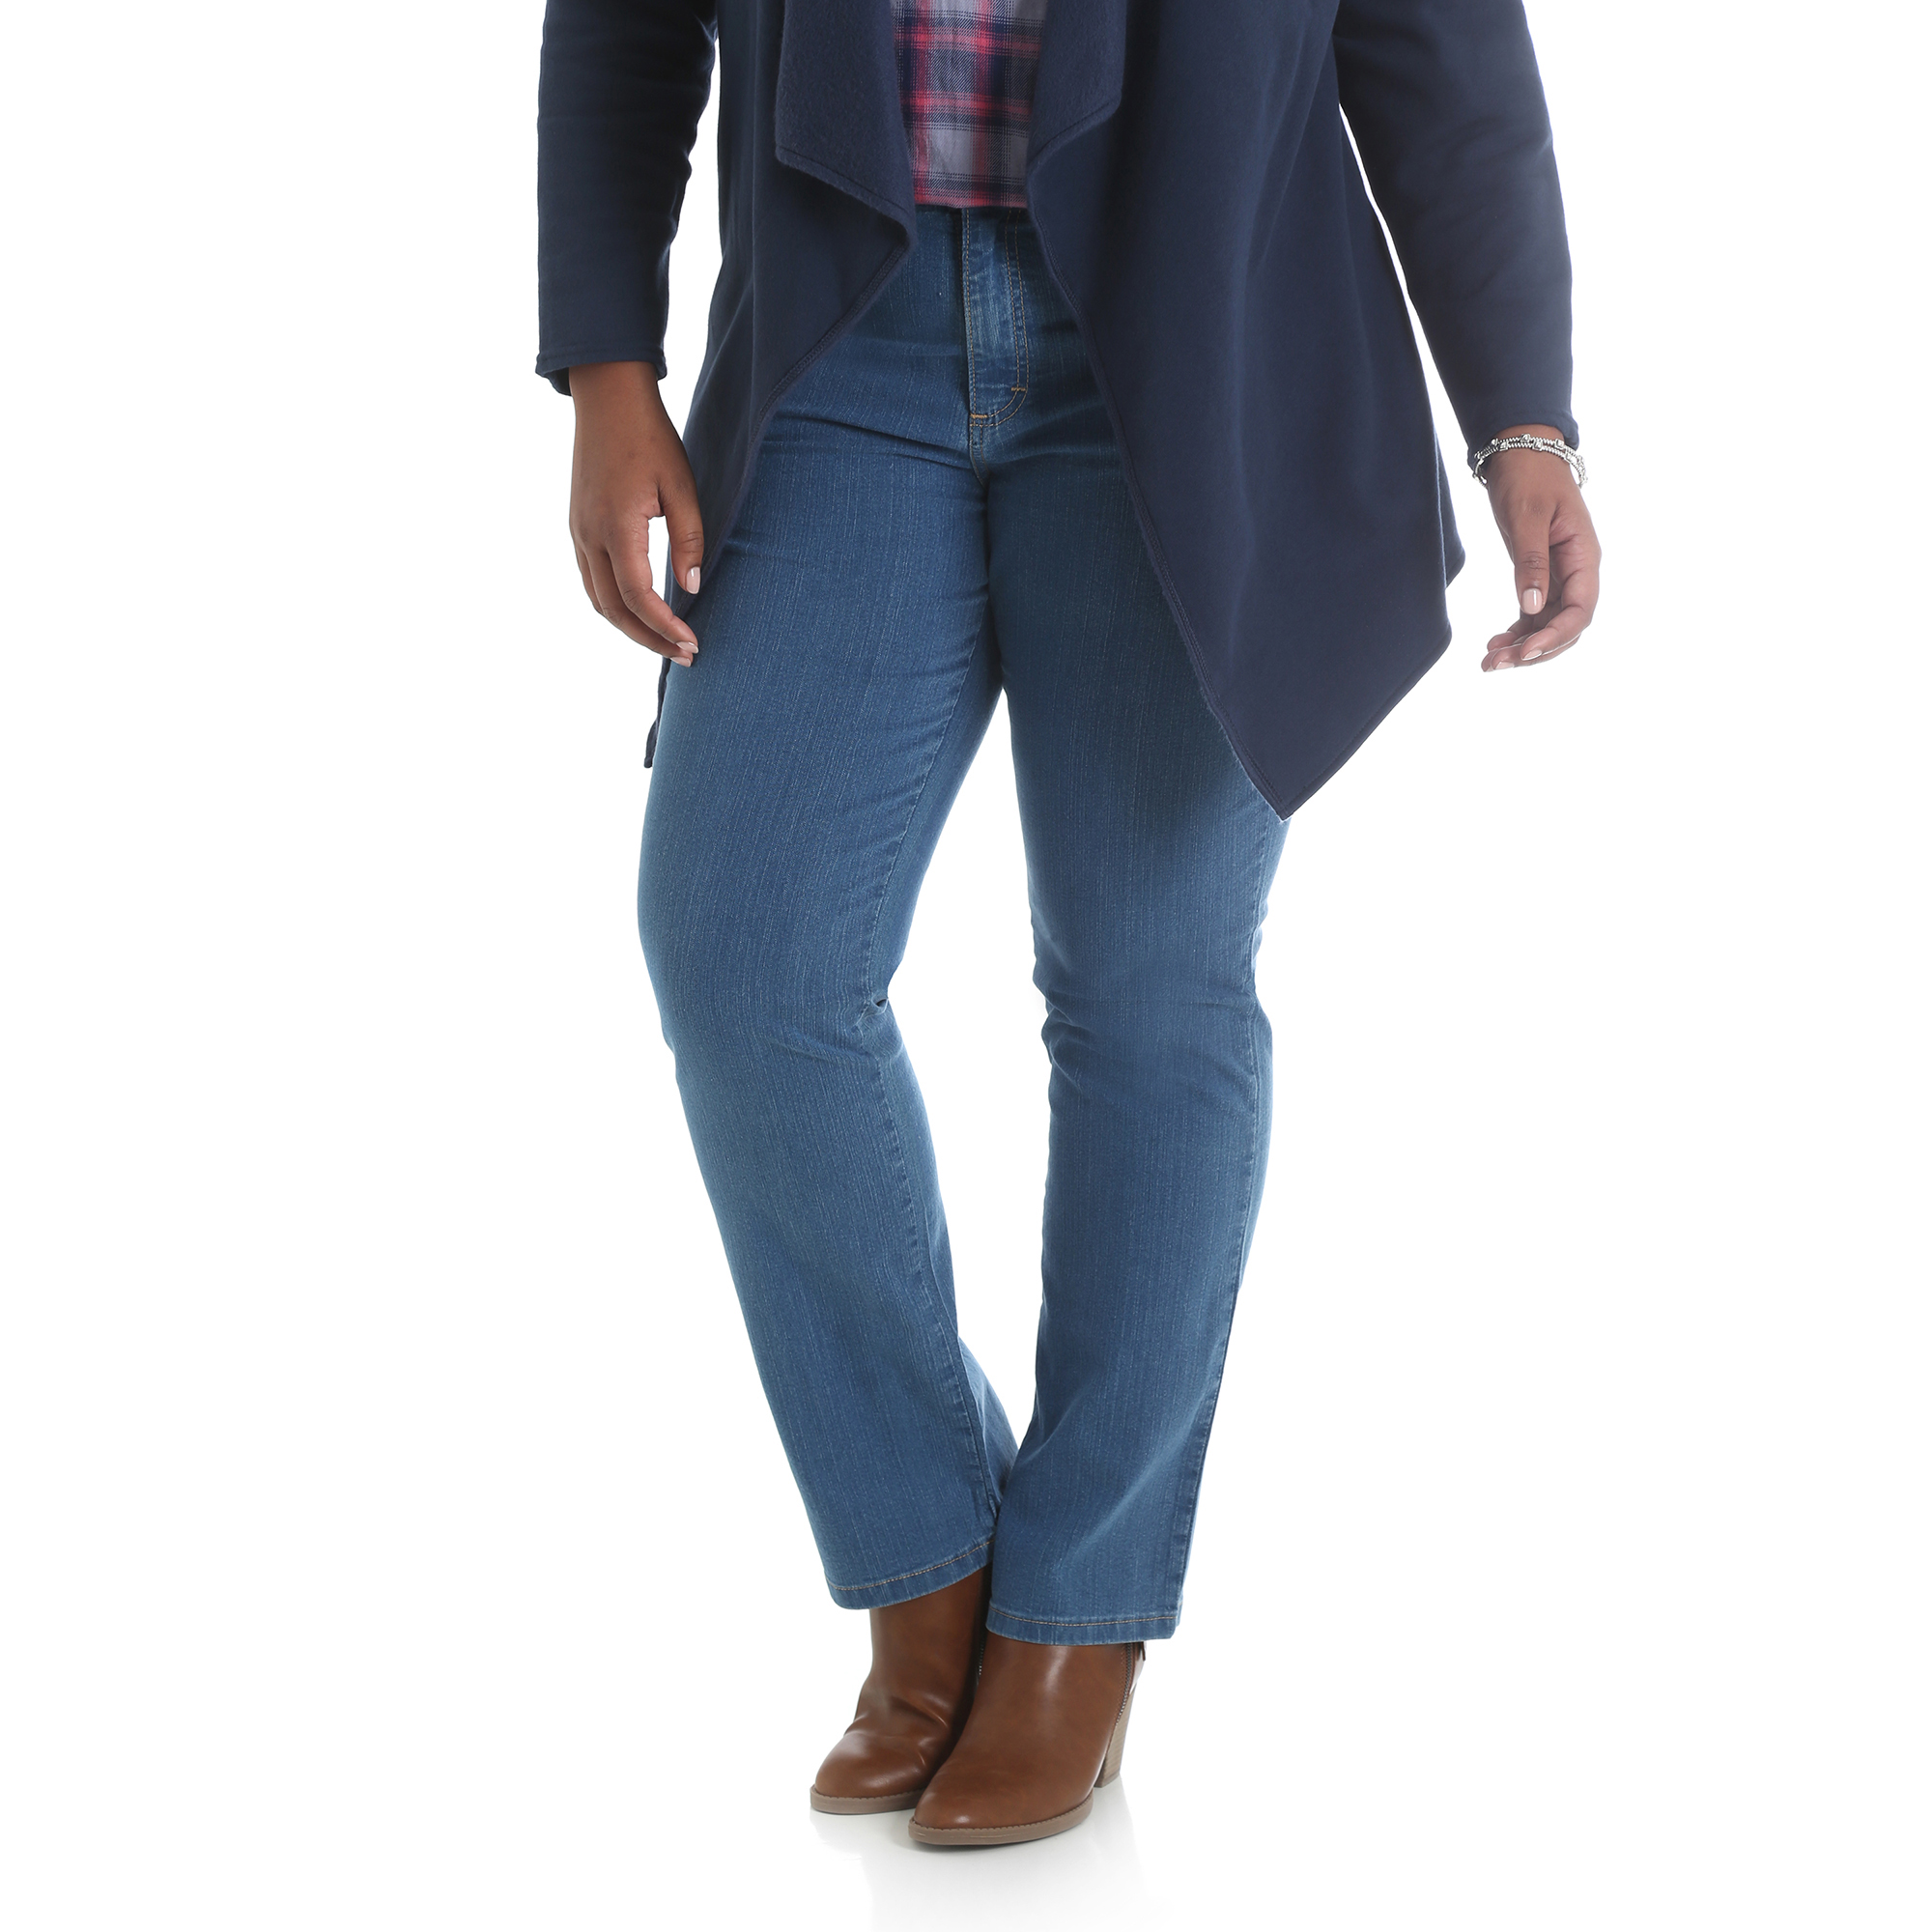 157HPAB - Simply Comfort Straight Leg Jean